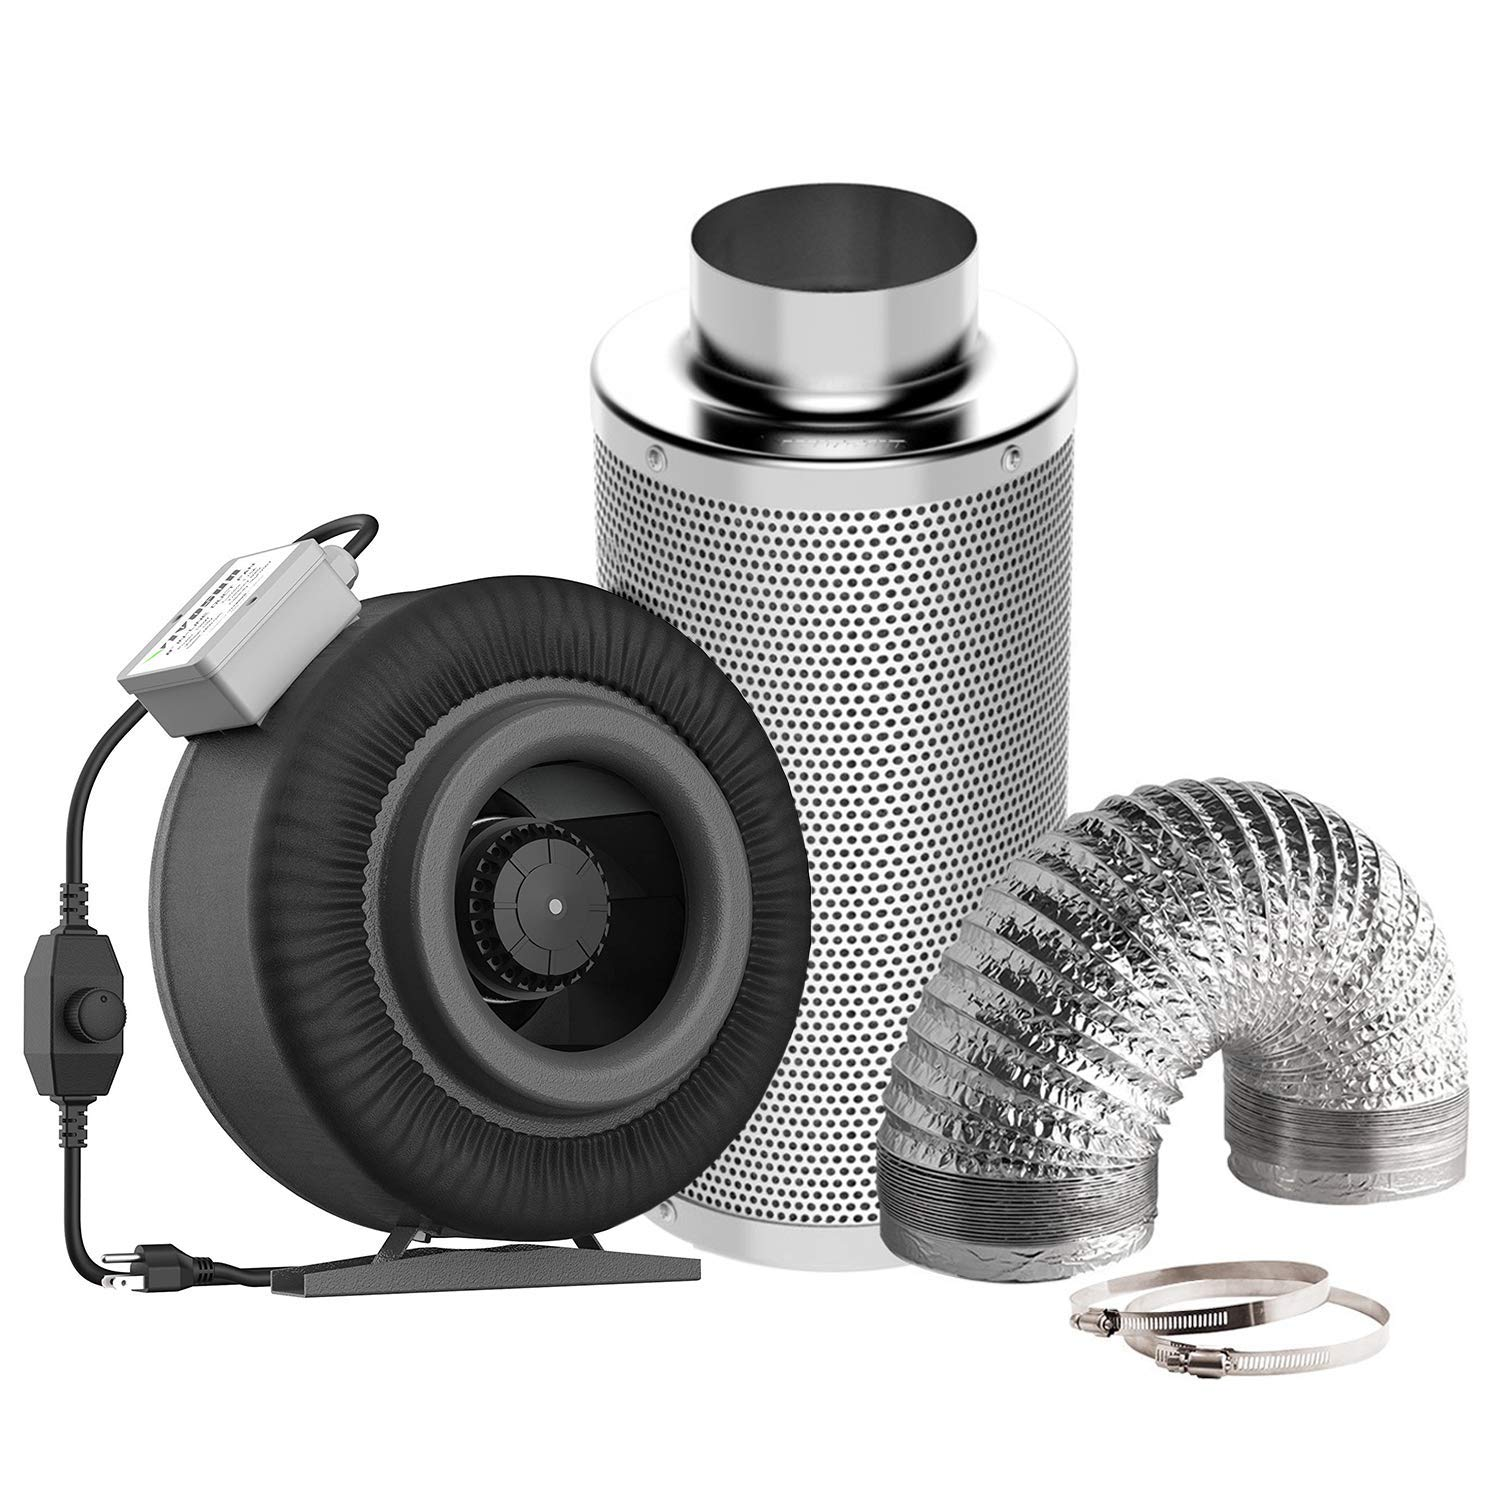 VIVOSUN Air Filtration Kit: 8 Inch 740 CFM Inline Fan with Speed Controller, 8 Inch Carbon Filter and 25 Feet of Ducting Combo (Renewed)